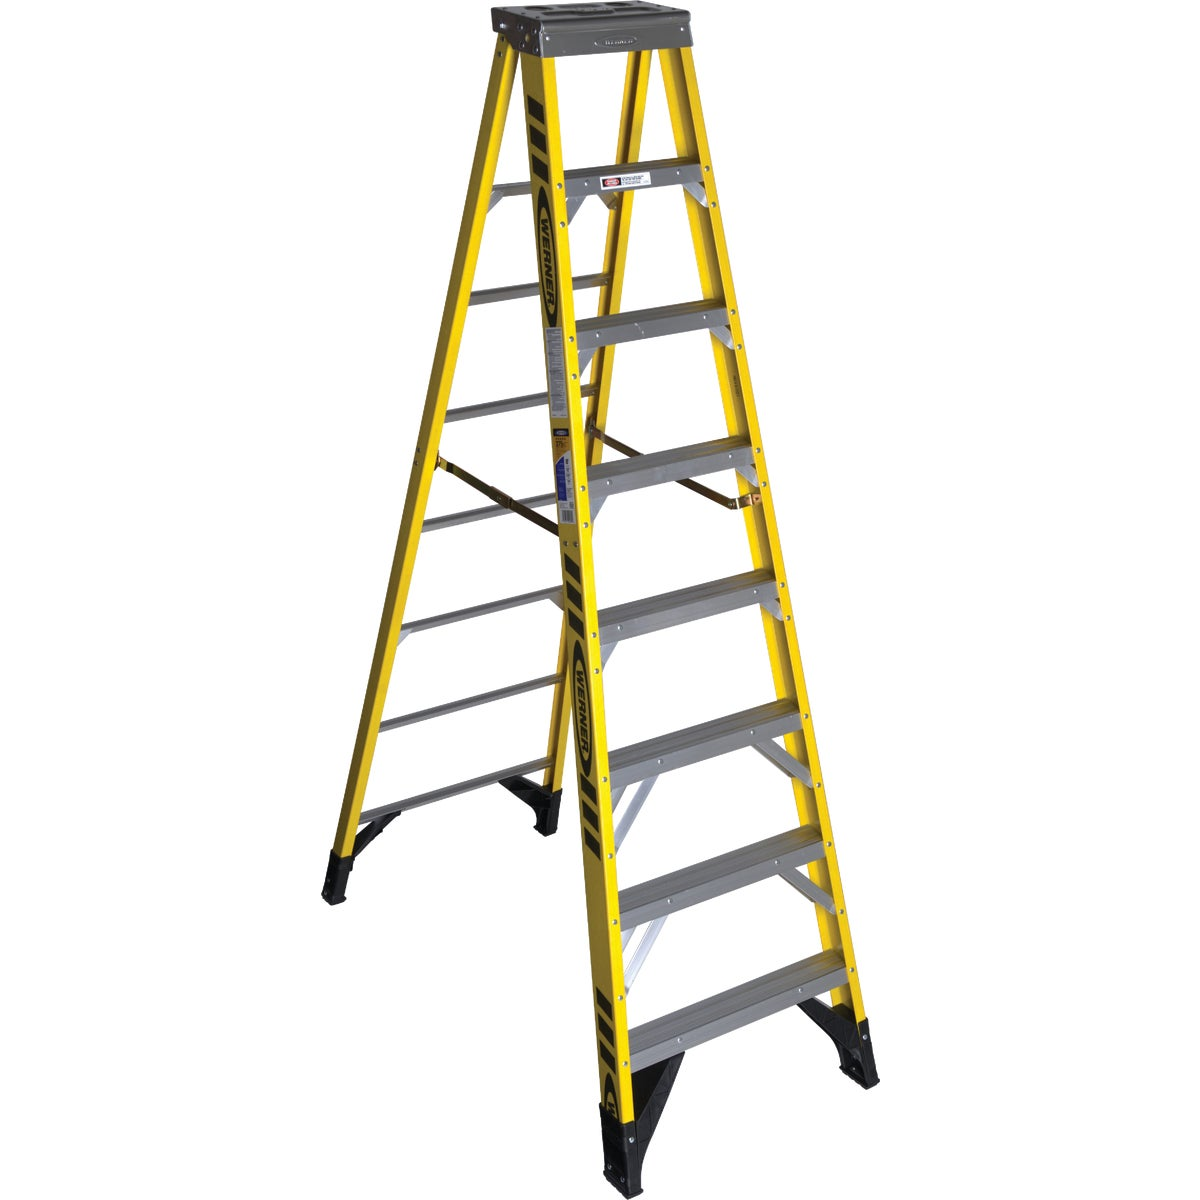 T-1AA 8' FBGL STEPLADDER - 7308 by Werner Ladder